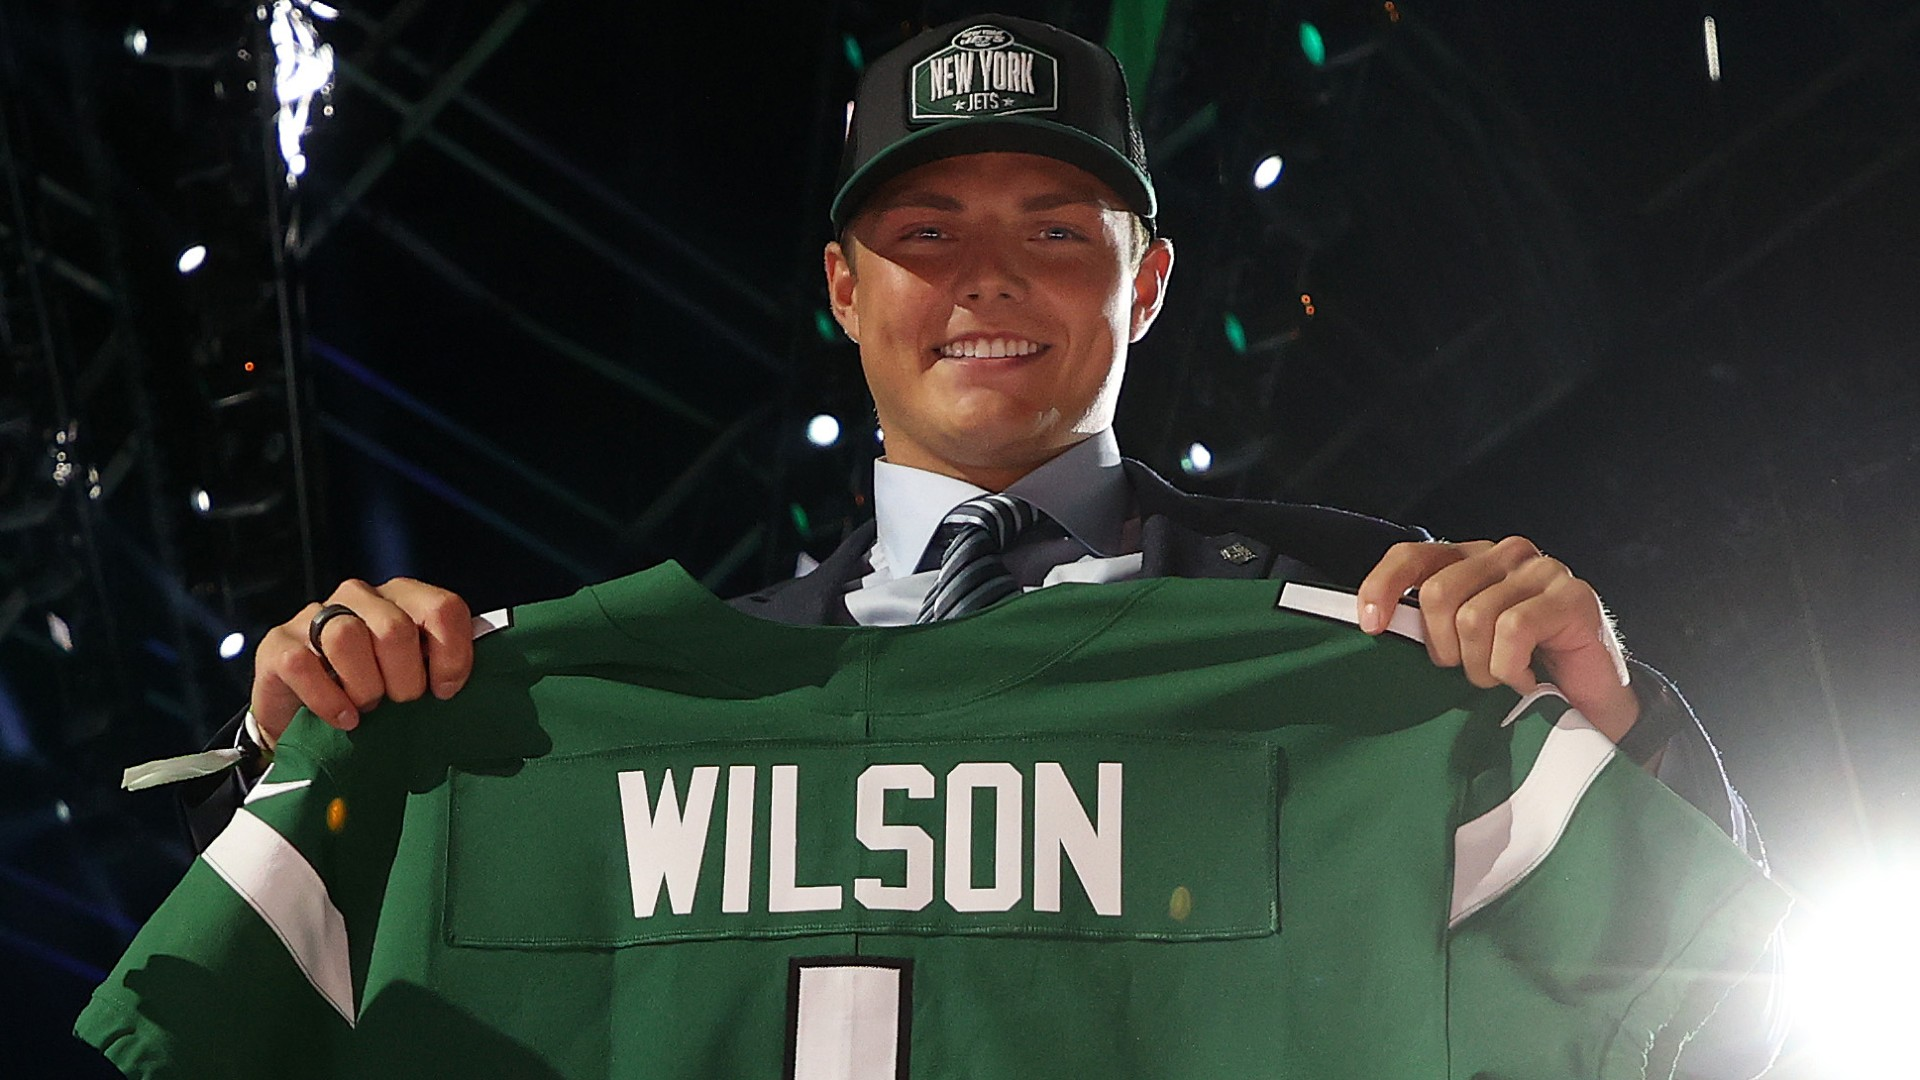 NFL Draft grades 2021: All 32 draft classes ranked from best (Dolphins) to worst (Raiders)